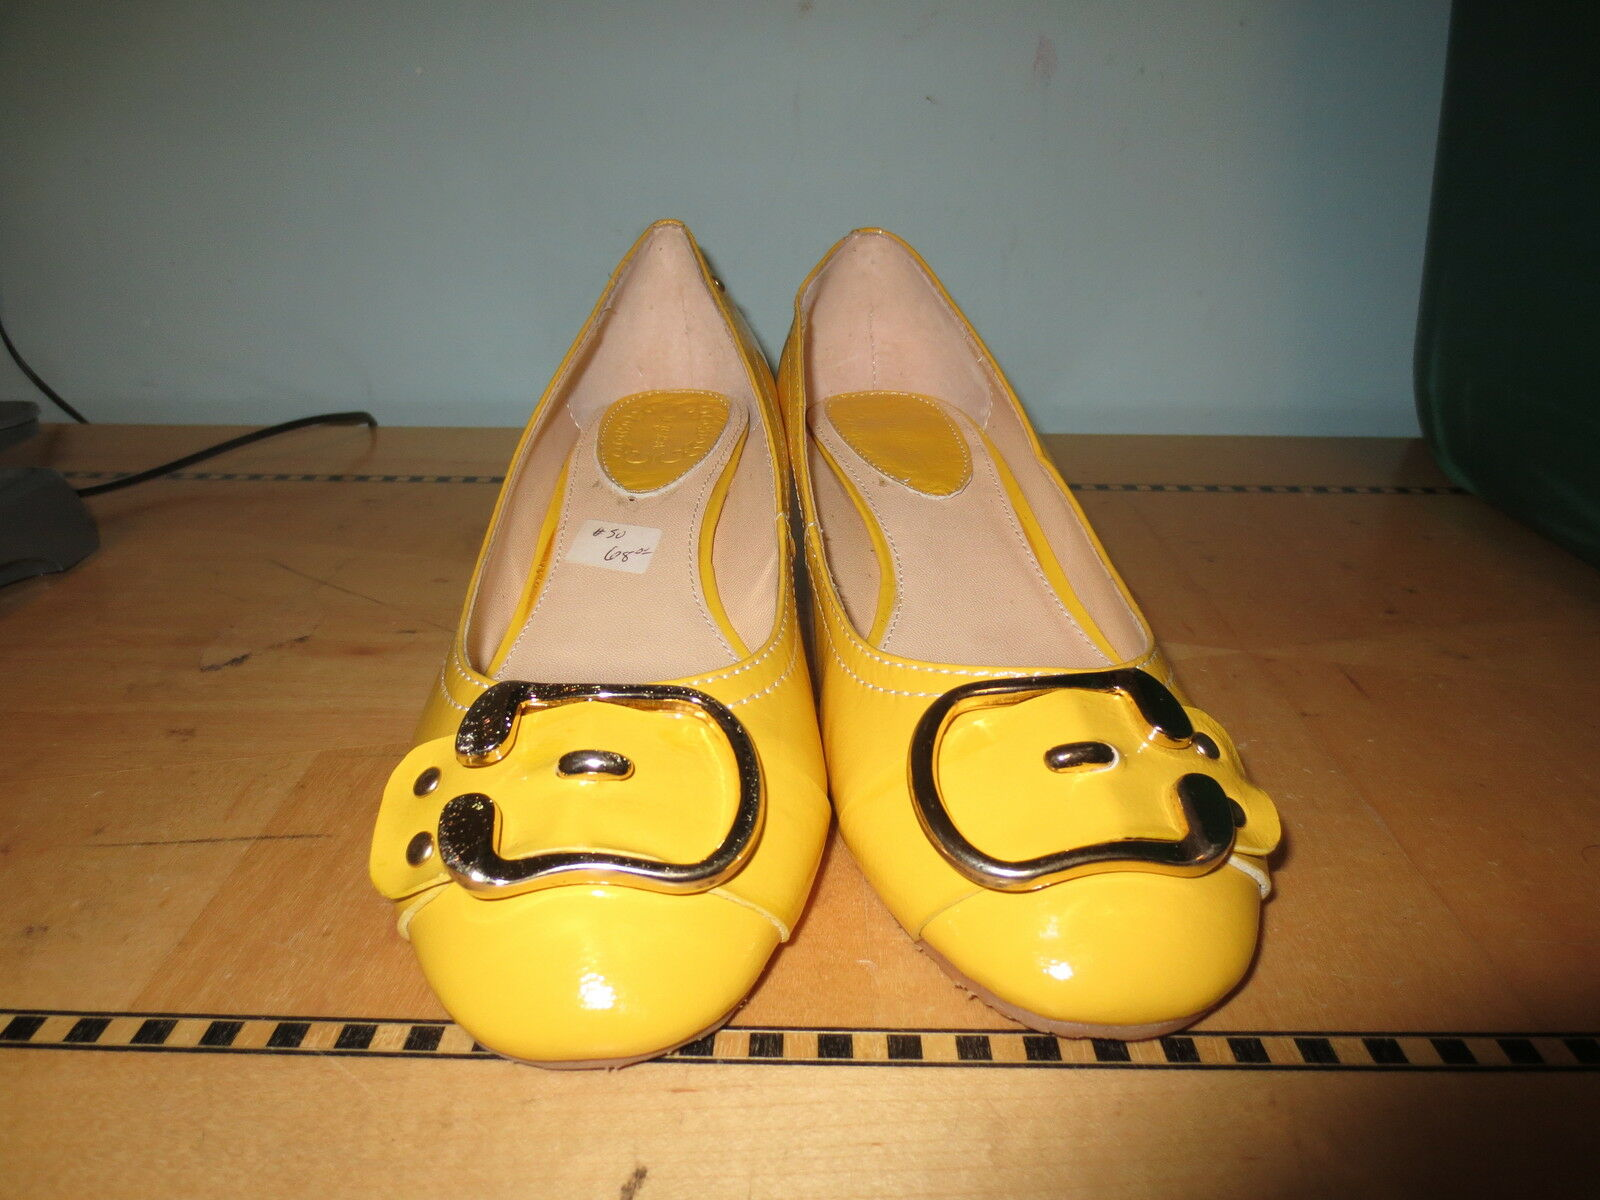 New retro patent style yellow patent retro low wedge shoe buckle toe sz 7 Brady 60's a84af0